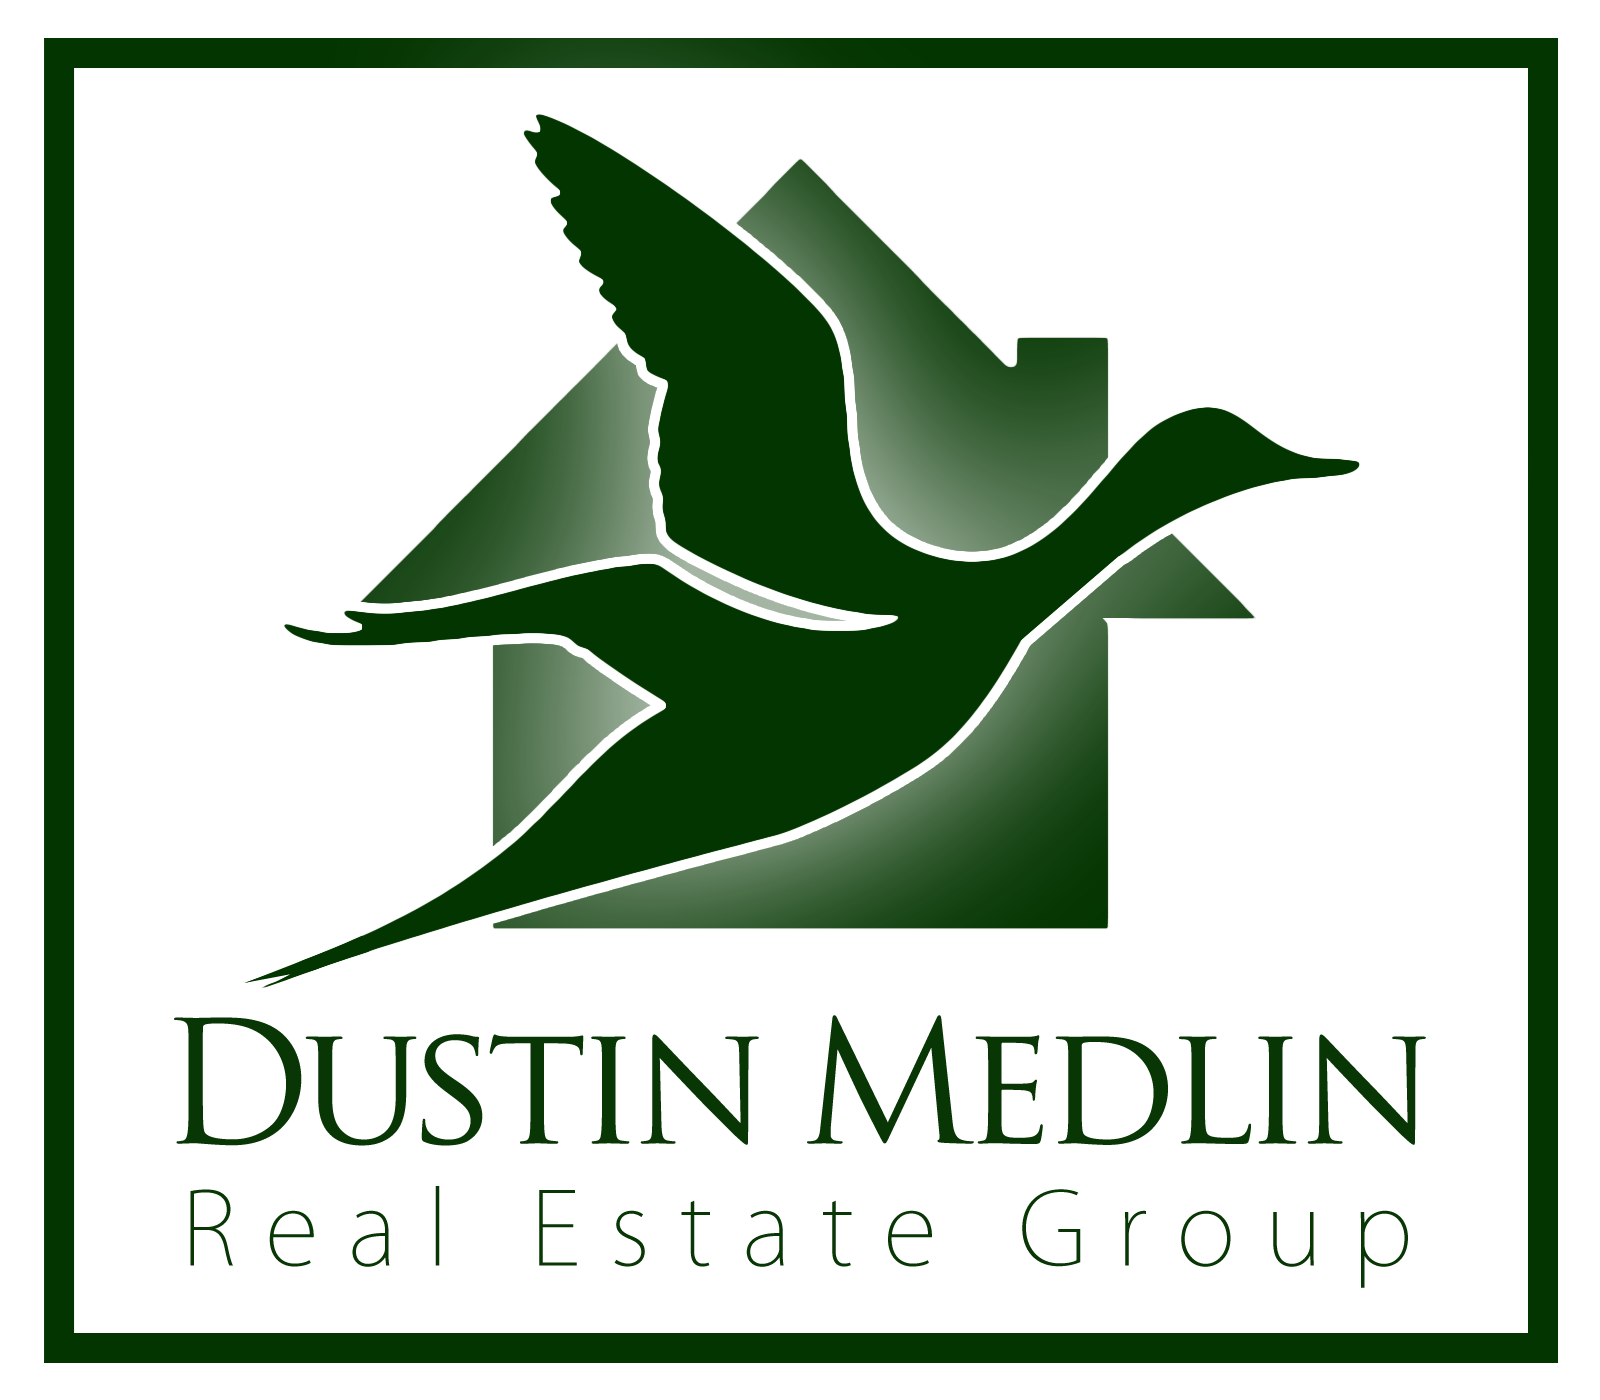 Dustin Medlin Group